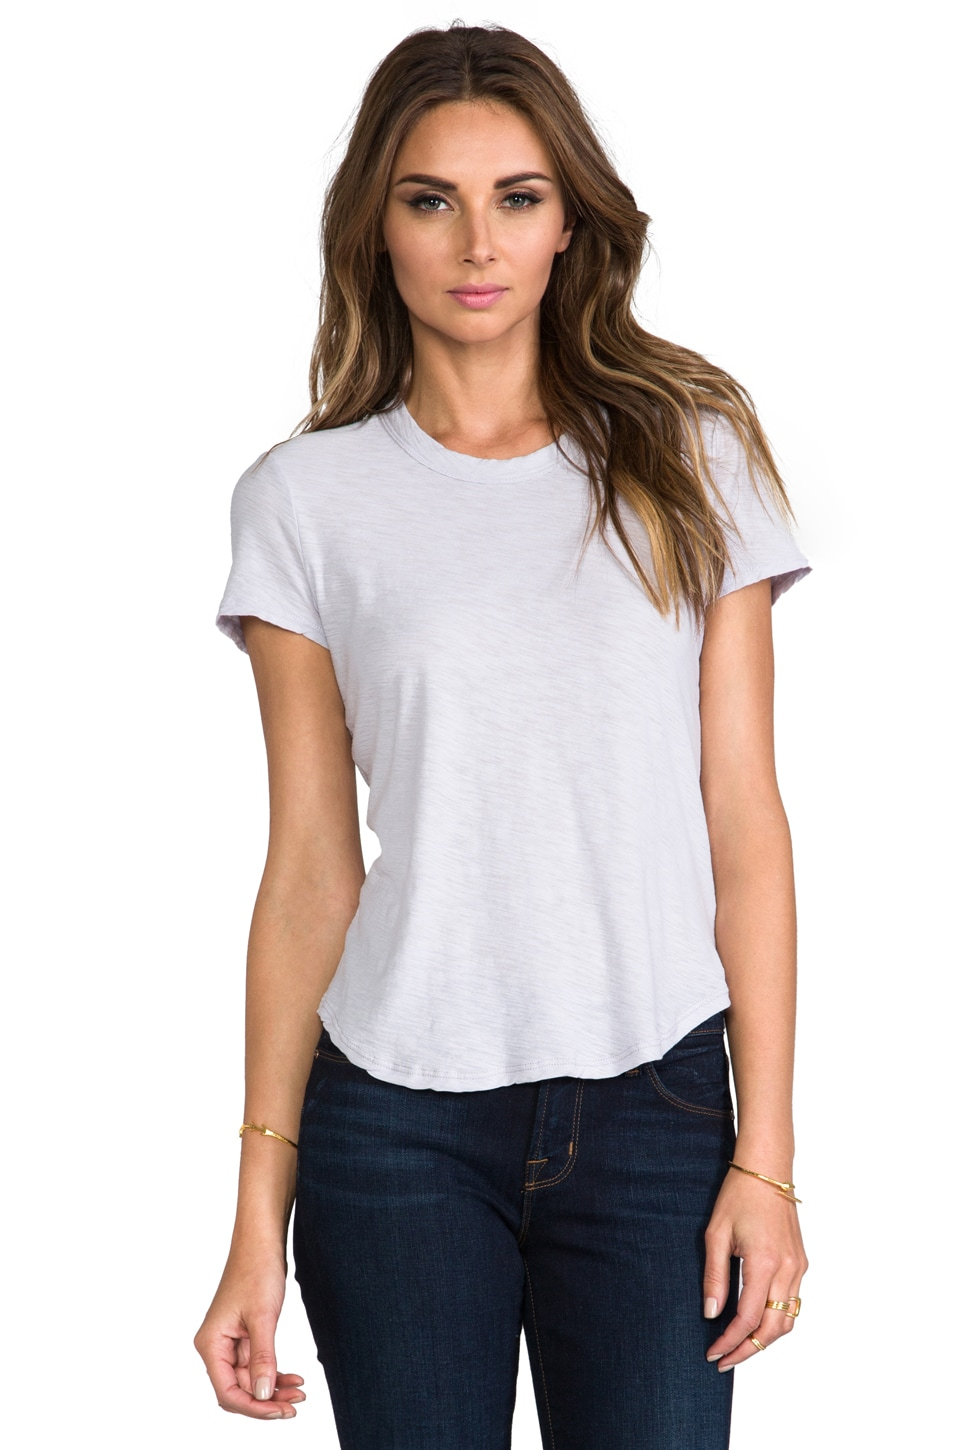 James Perse Sheer Slub Crew Neck Tee in Close